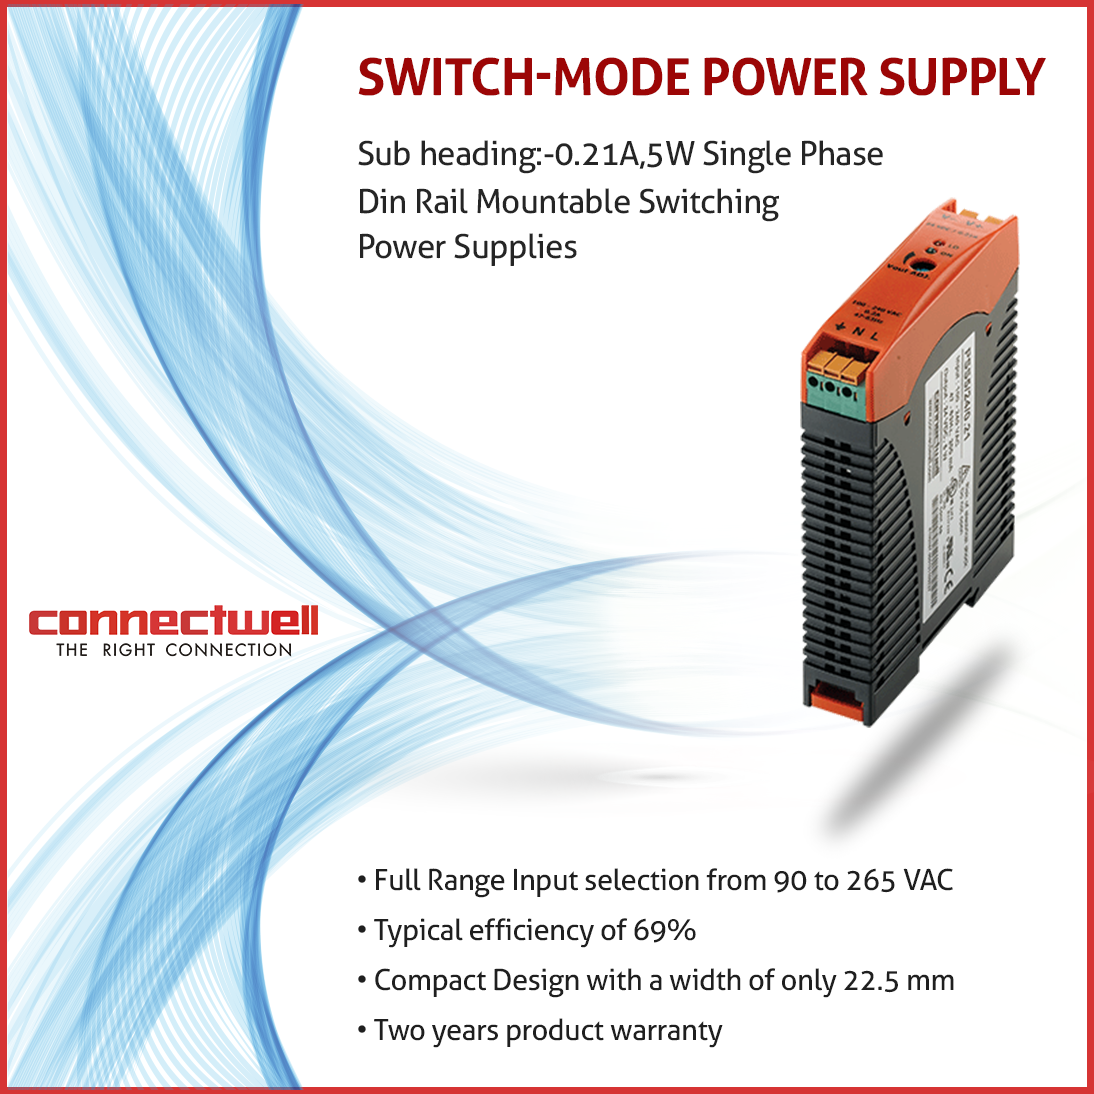 Pin By Connectwell Products On Pinterest Switched Power Supply Tutorial Smps Mode